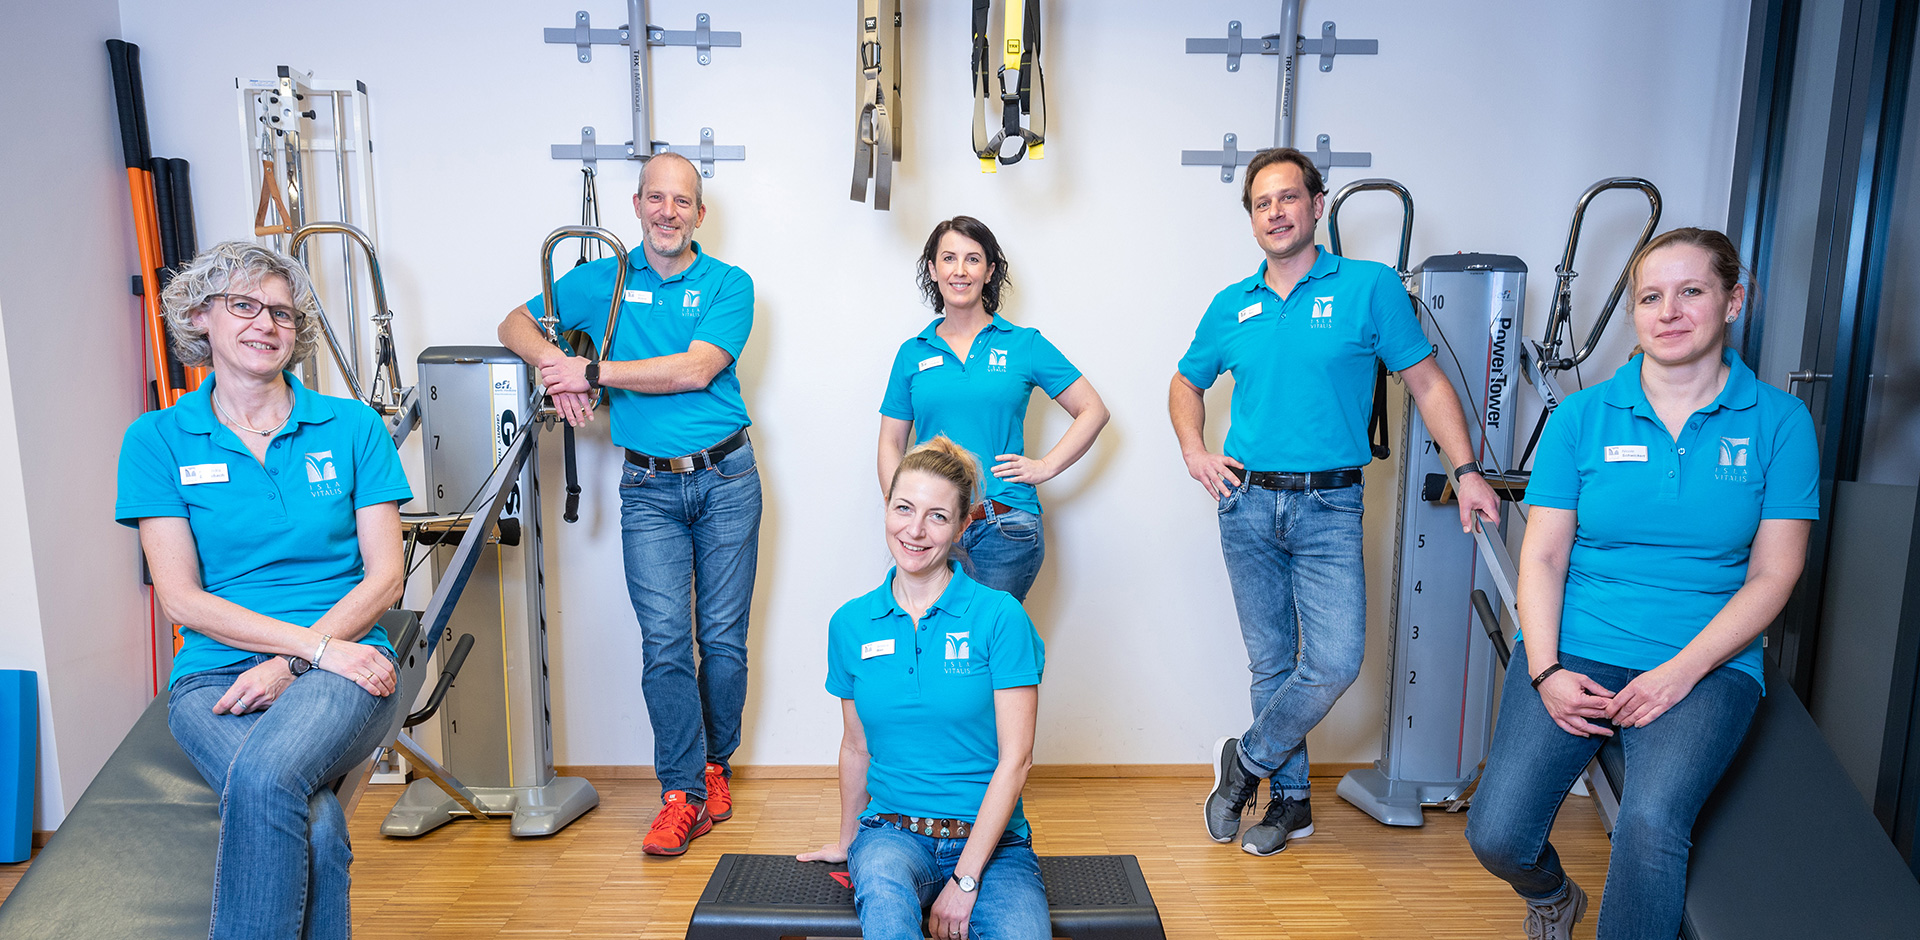 Isla Vitalis Physiotherapie Praxis-Team